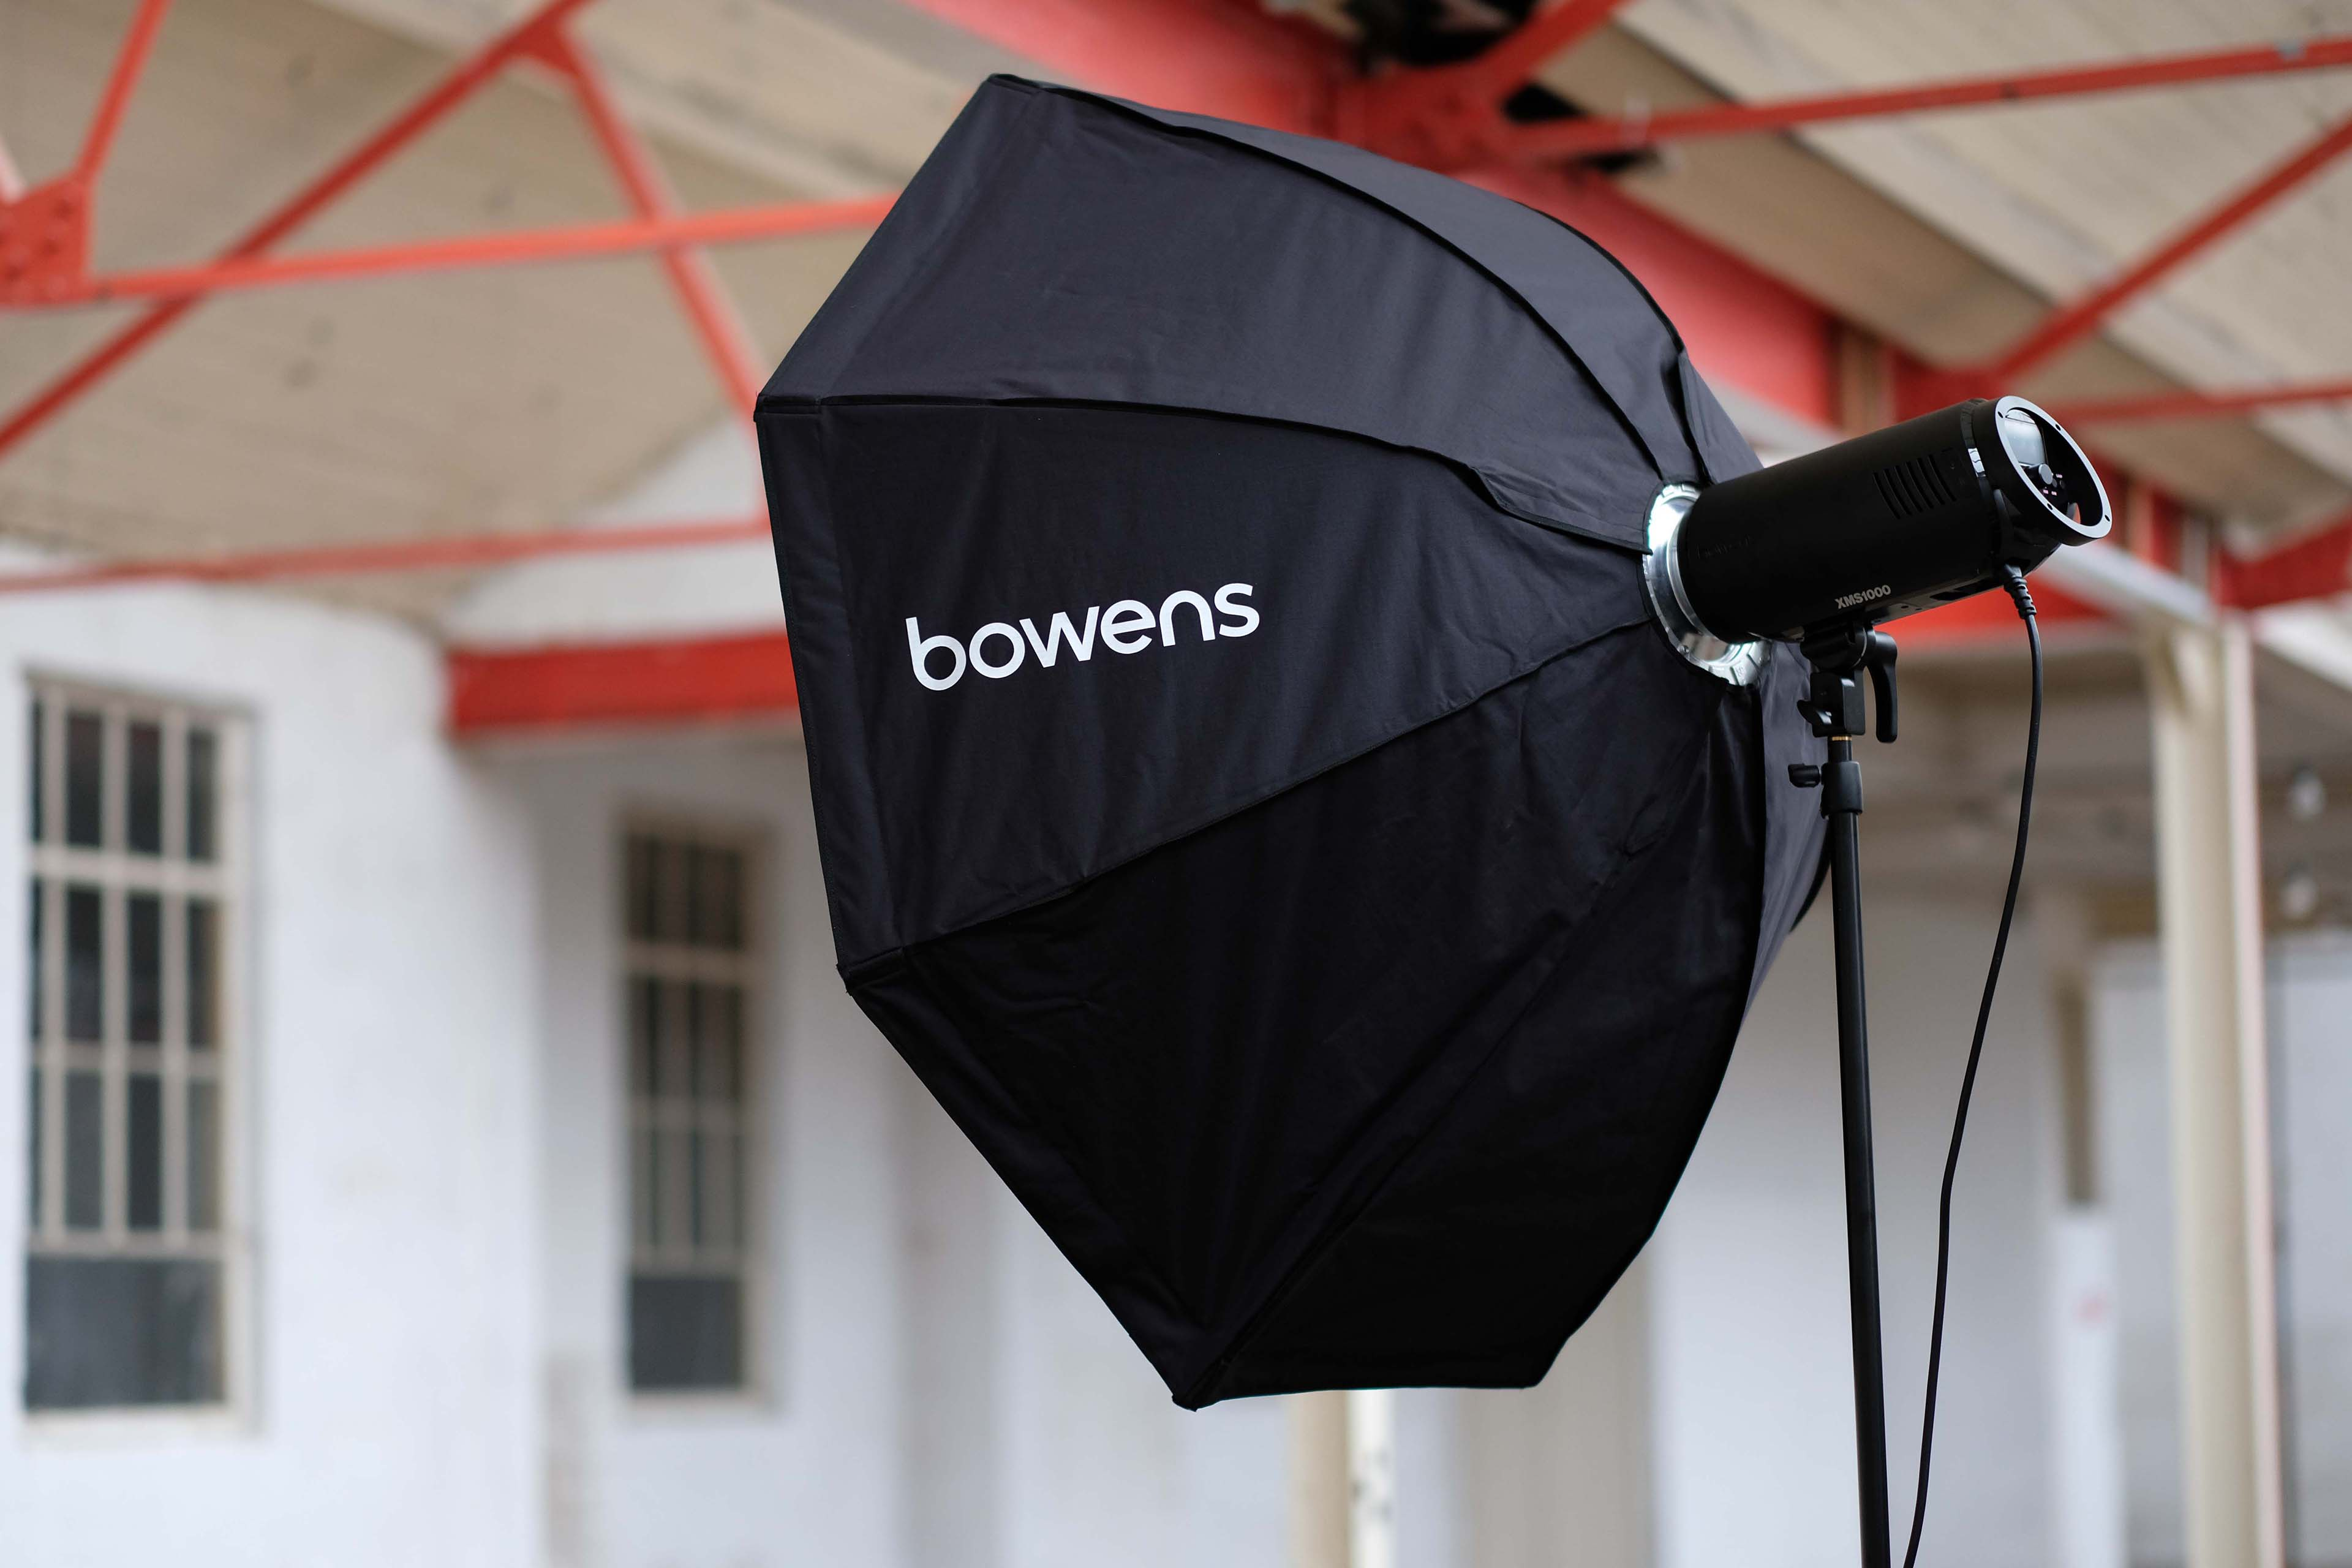 Bowens XMS100 flash head with diffuser